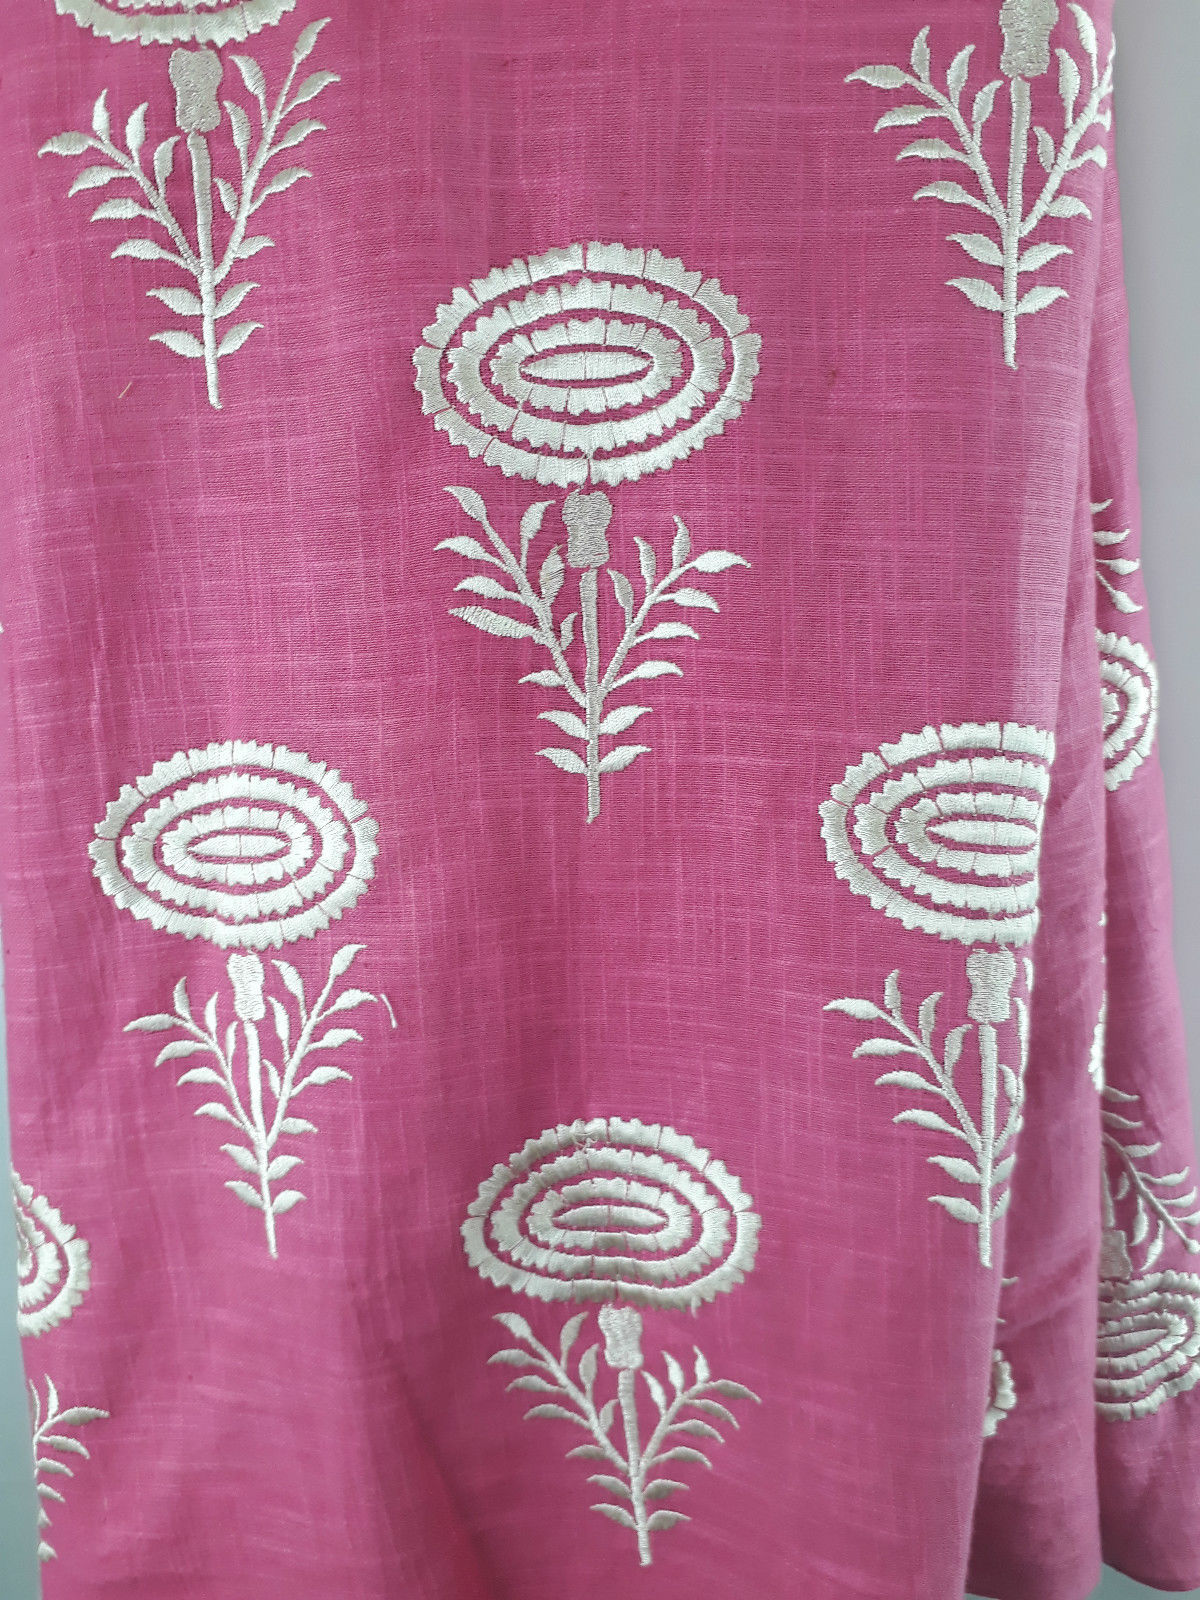 embroidery material online shopping indian fabric store Embroidered, Jaquard Cotton Off White, Yellow 45 inches Wide 1775